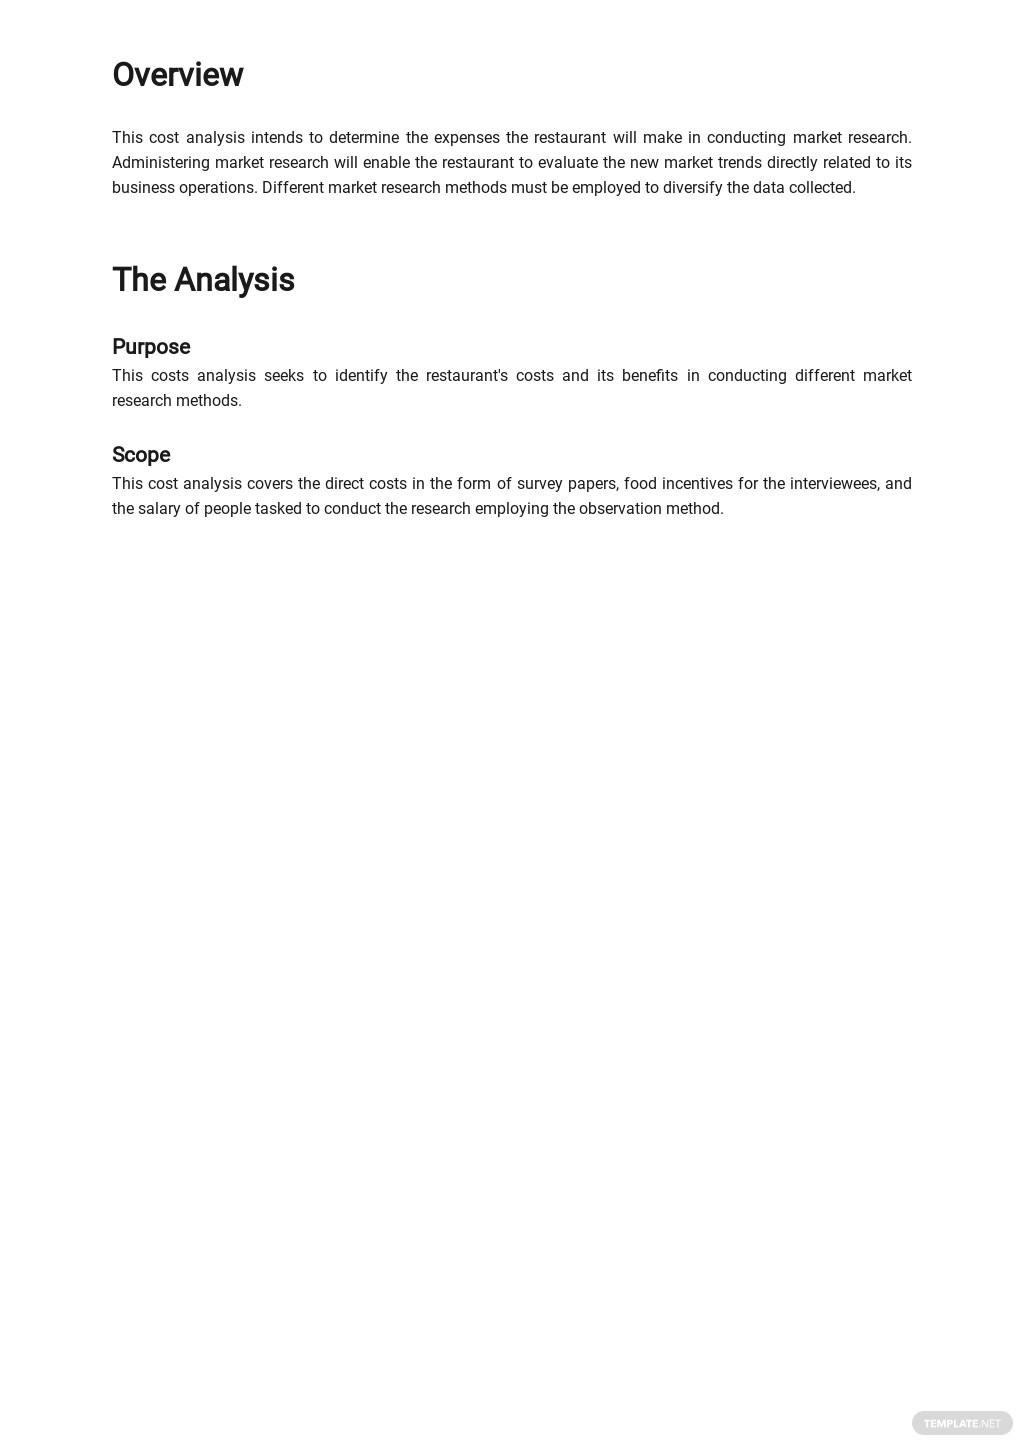 Cost Analysis of Restaurant Market Research Method Template 1.jpe